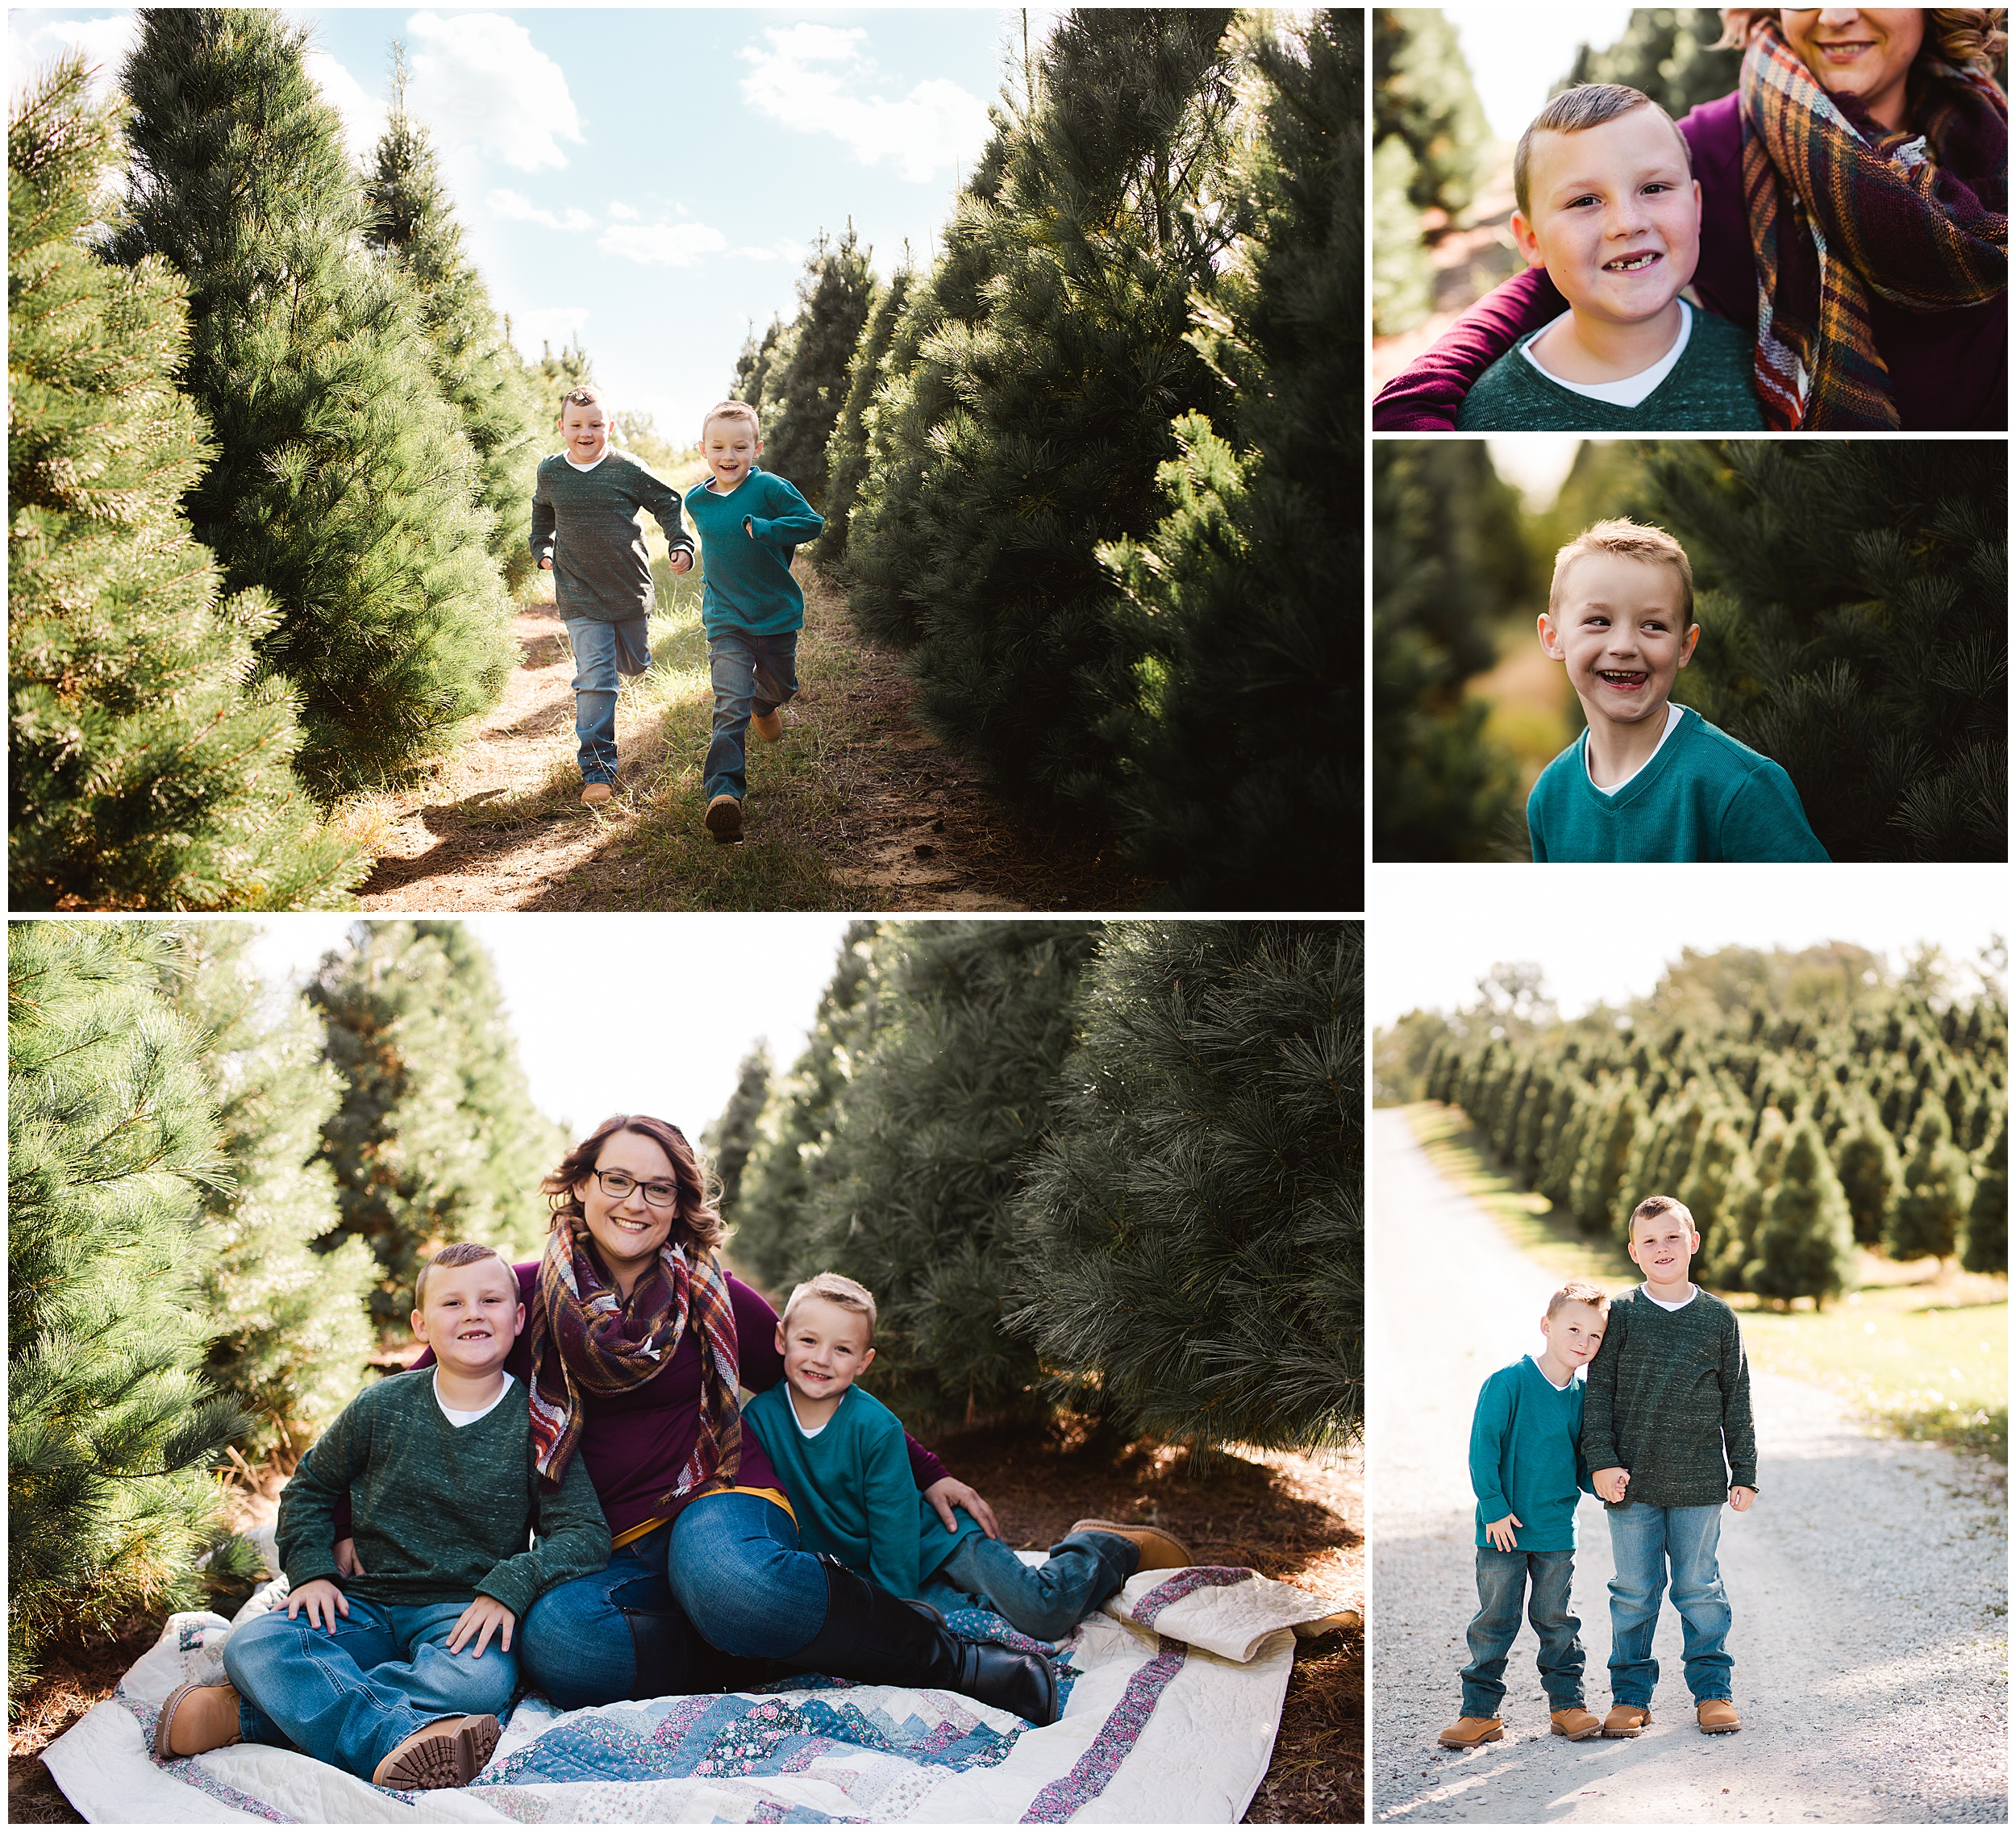 Indianapolis Family Photographer_Kelli White Photography_IG_0228.jpg